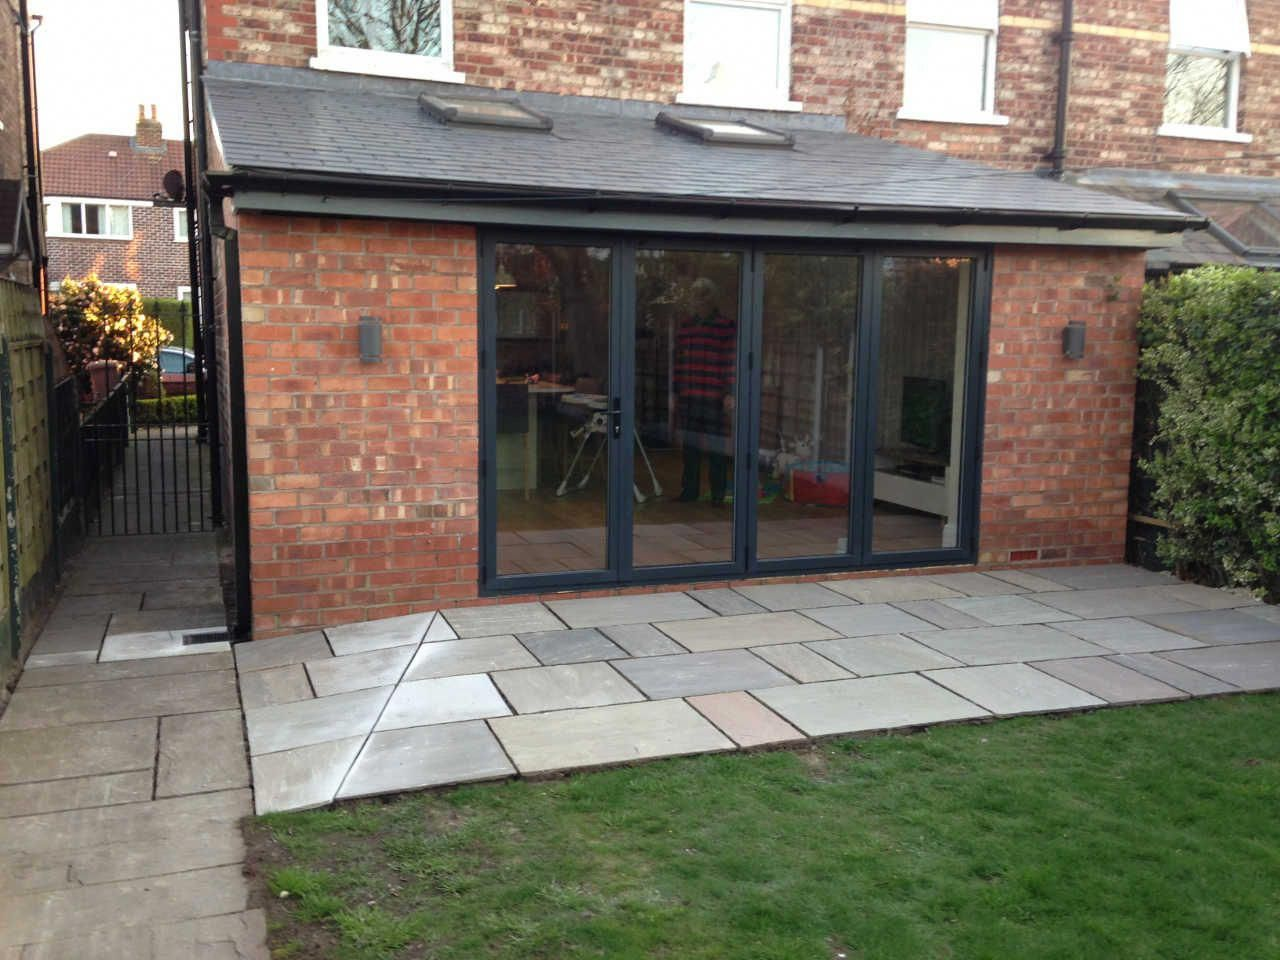 Single Storey Rear Kitchen Extension Kitchendiners House Extension Design Garden Room Extensions House Extension Plans